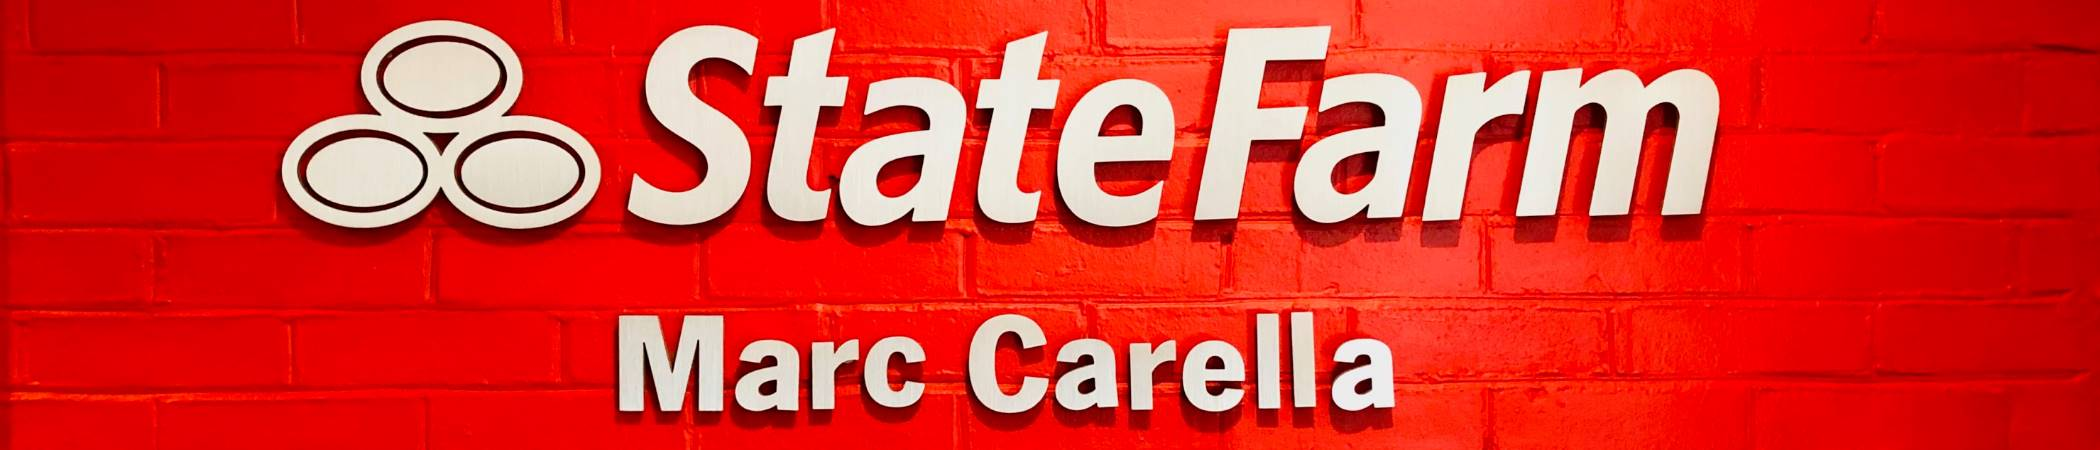 Marc Carella State Farm Insurance in Edgewater, MD | Home, Auto Insurance & more